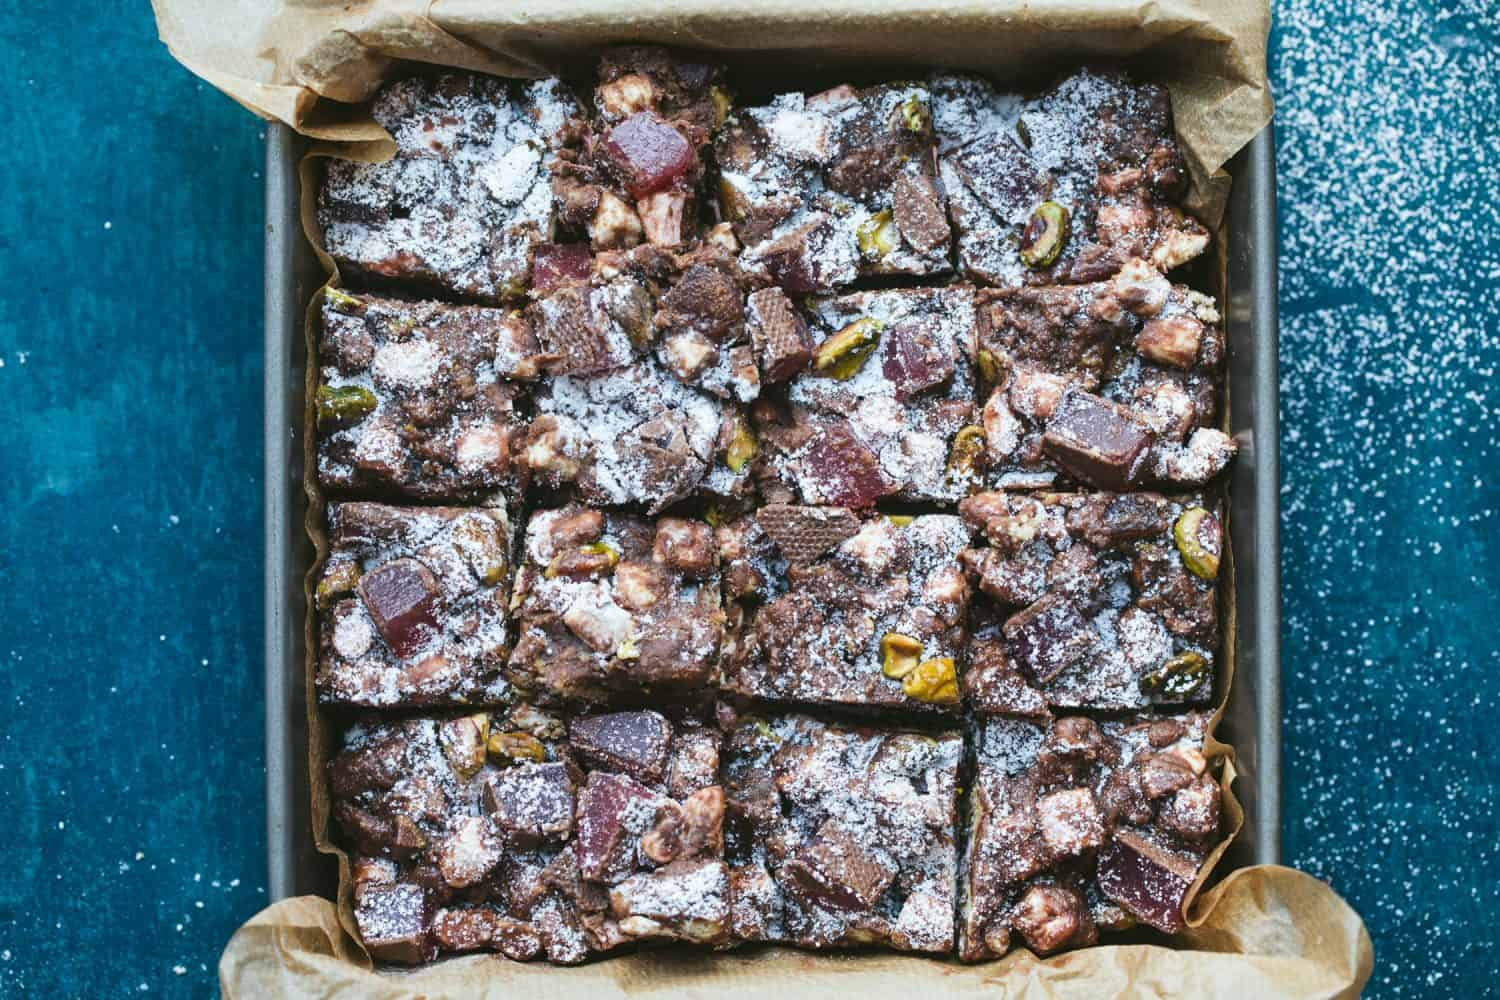 16 squares of chocolate Rocky Road in a baking tray lined with baking paper.